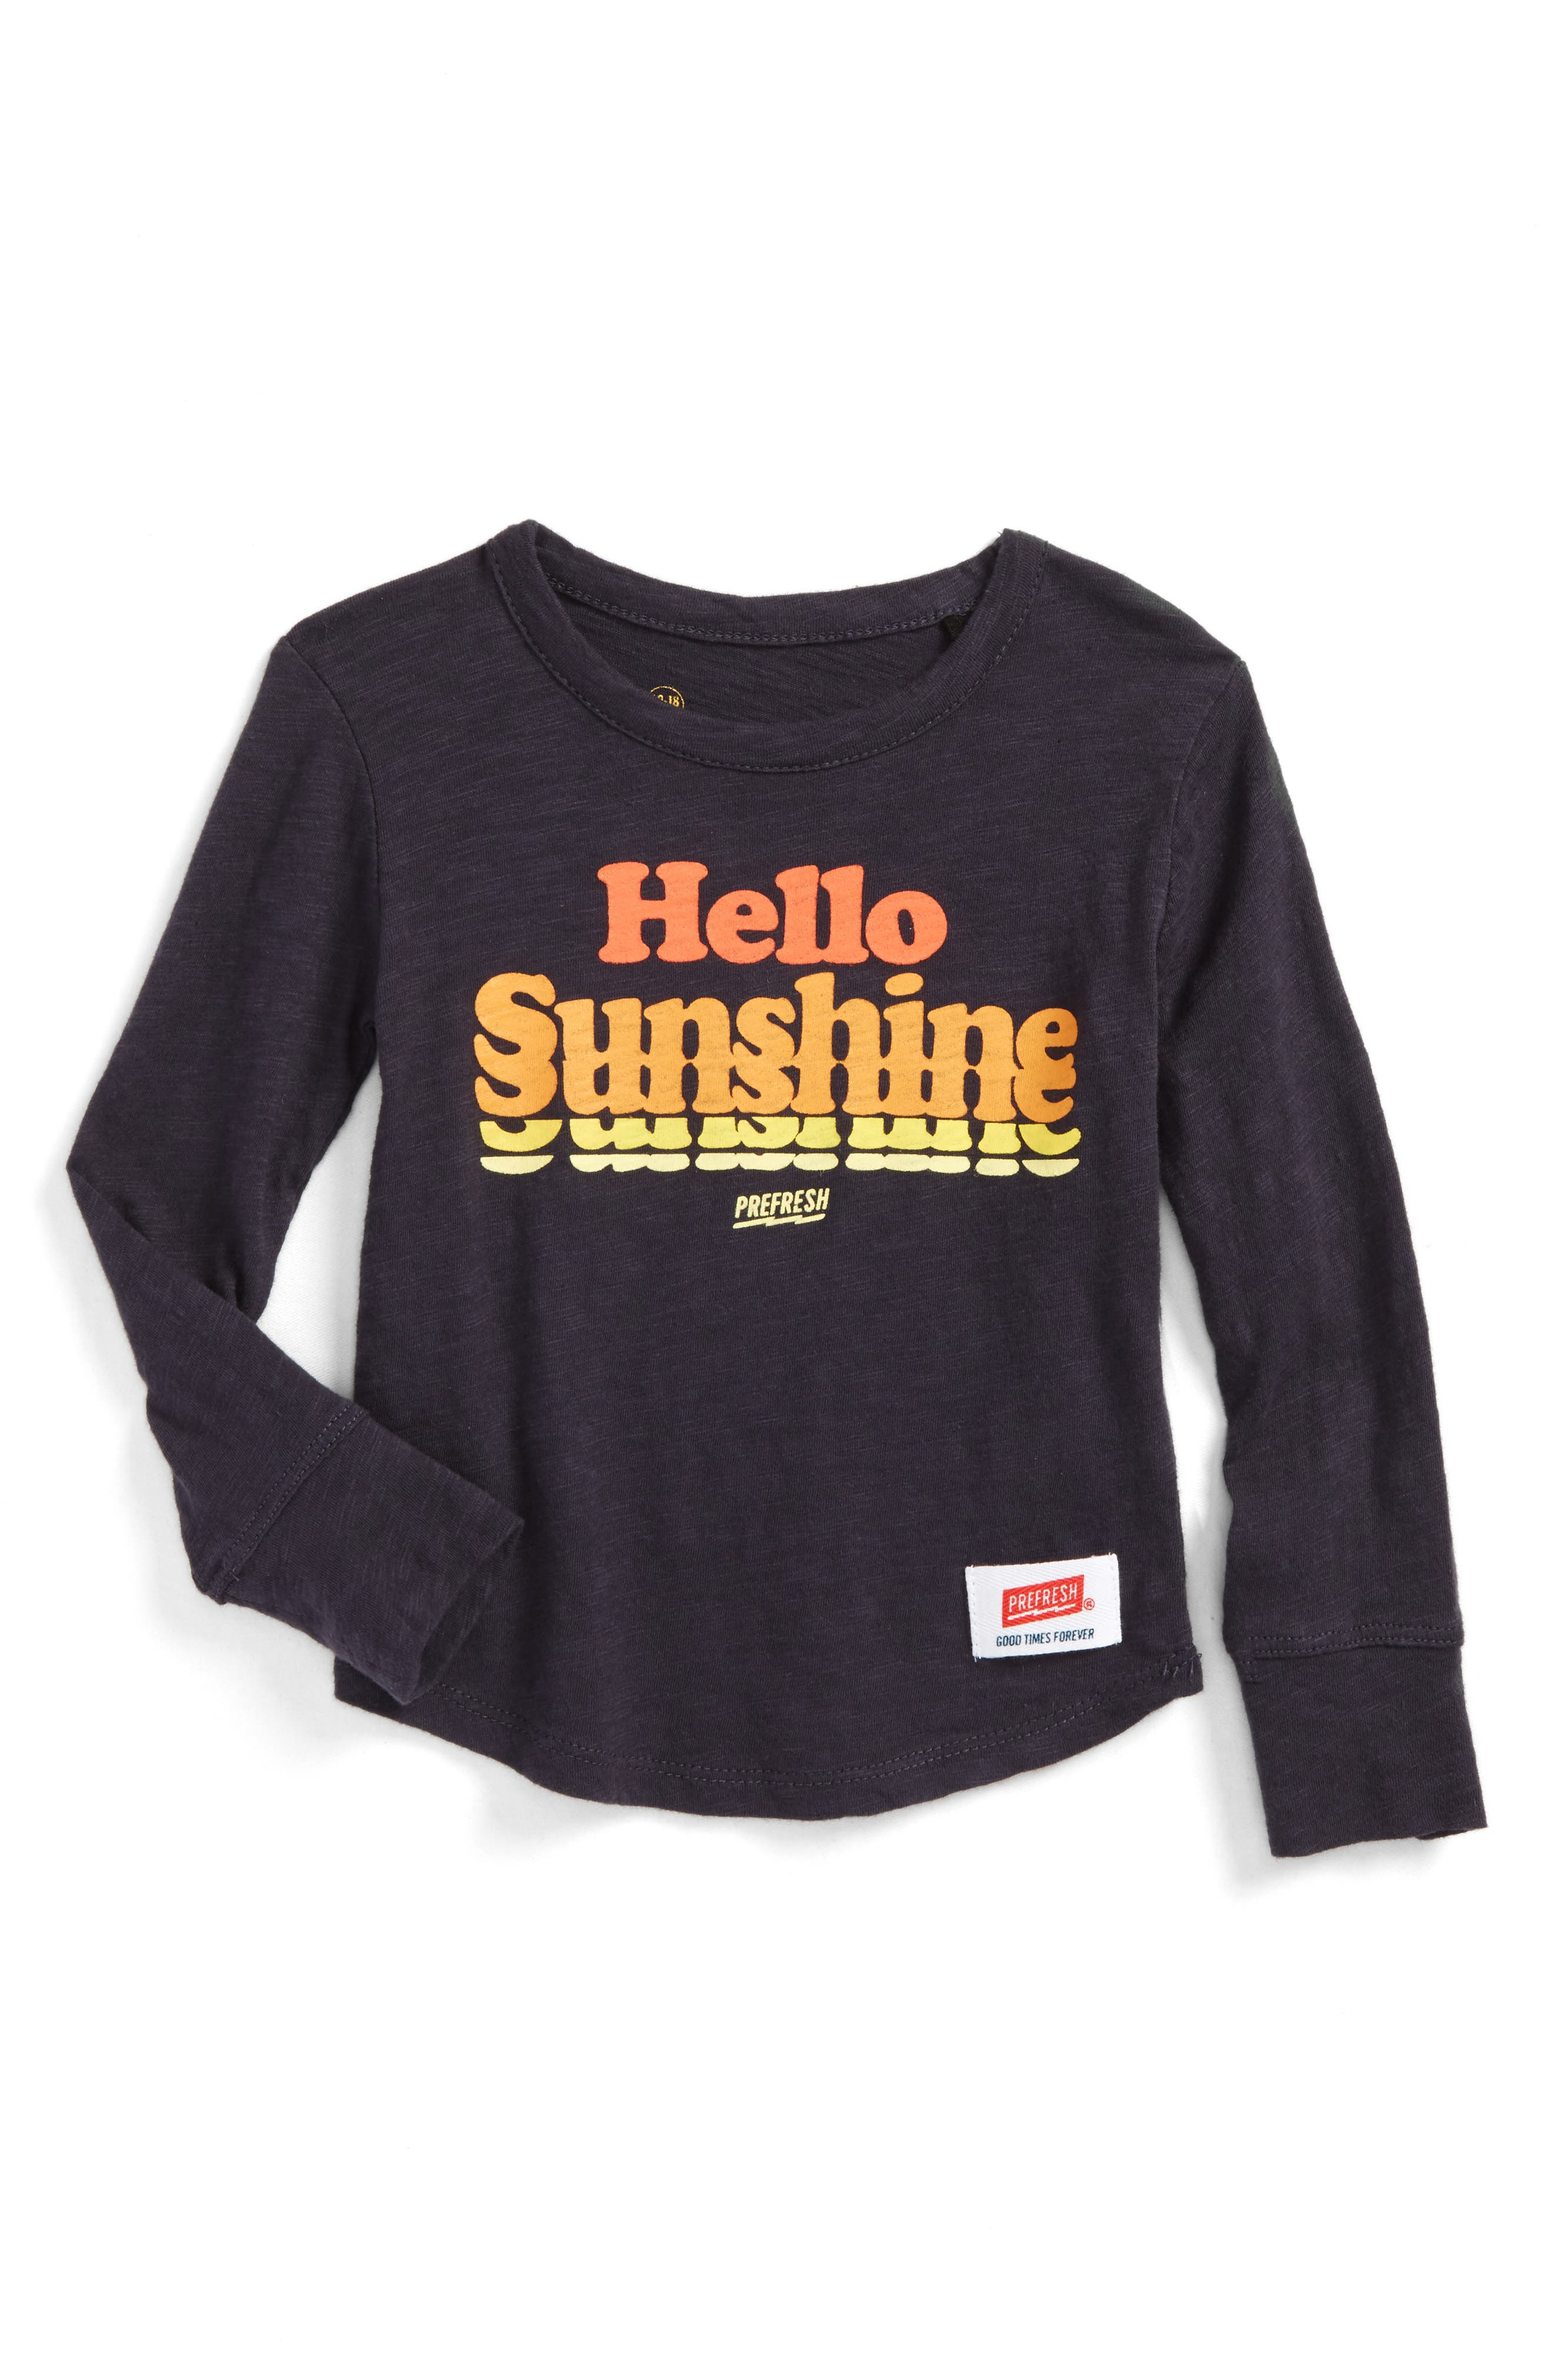 Alternate Image 1 Selected - Prefresh Hello Sunshine Graphic T-Shirt (Baby Boys)